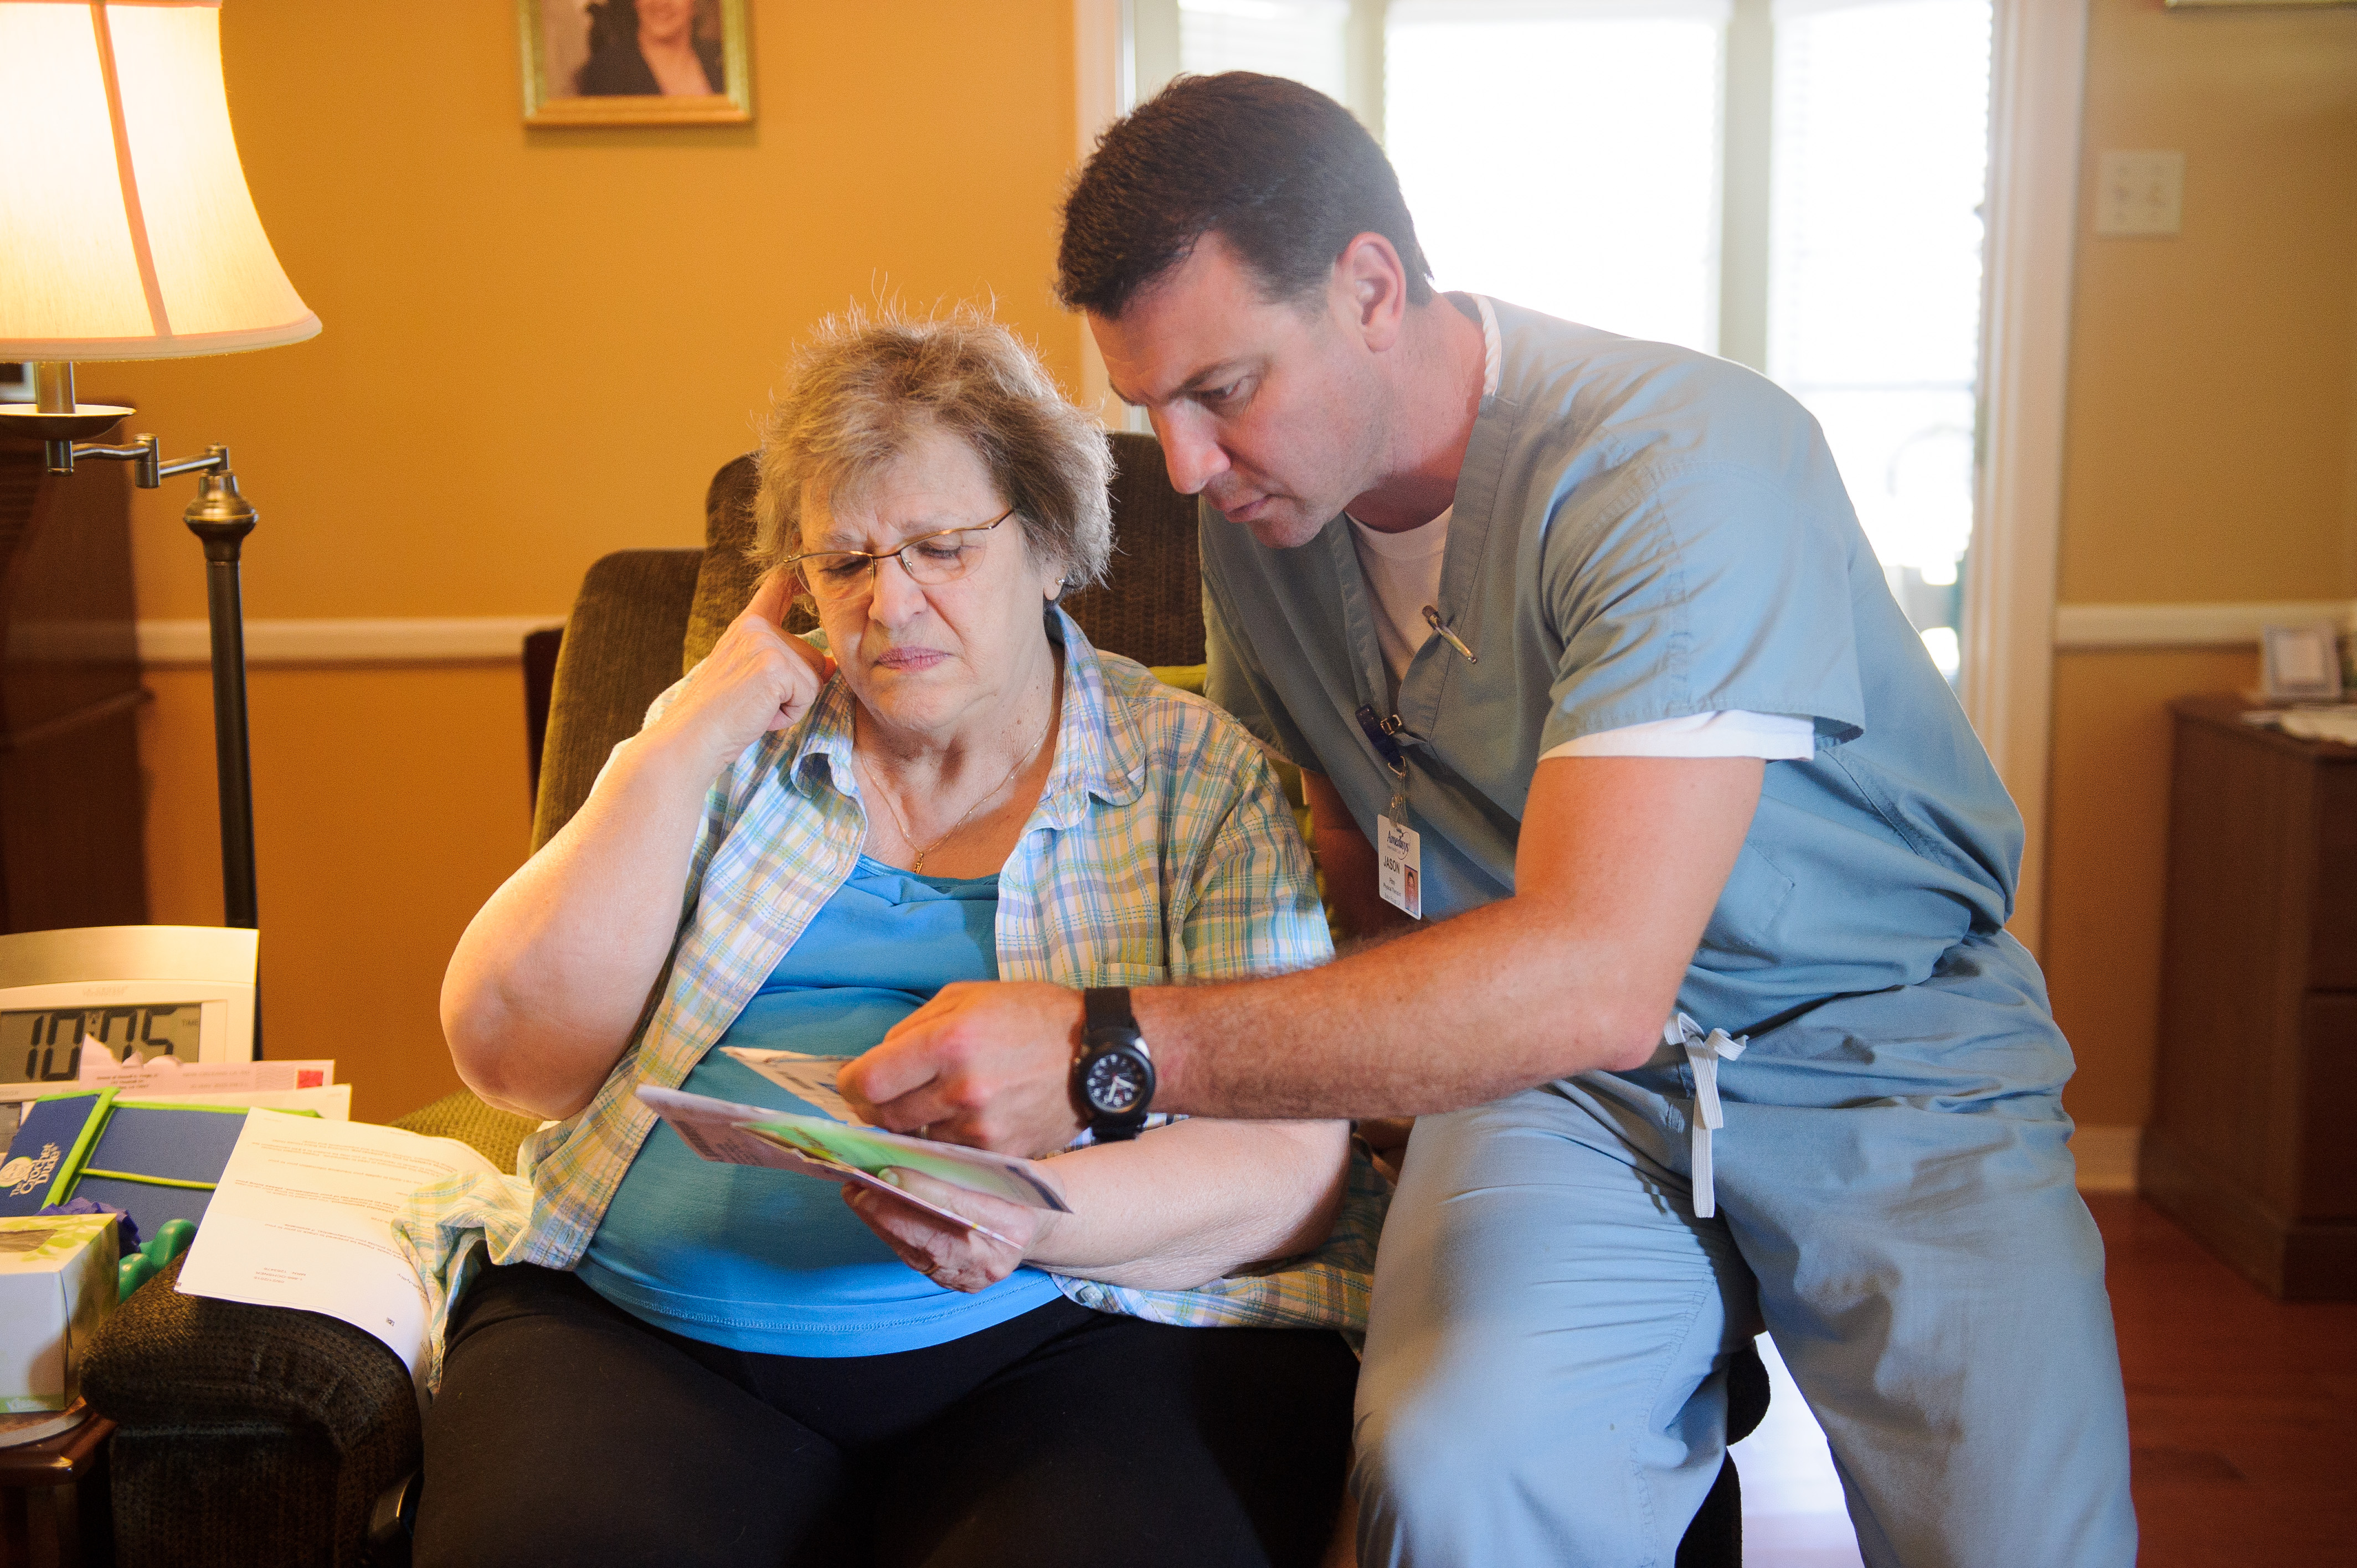 COPD care options